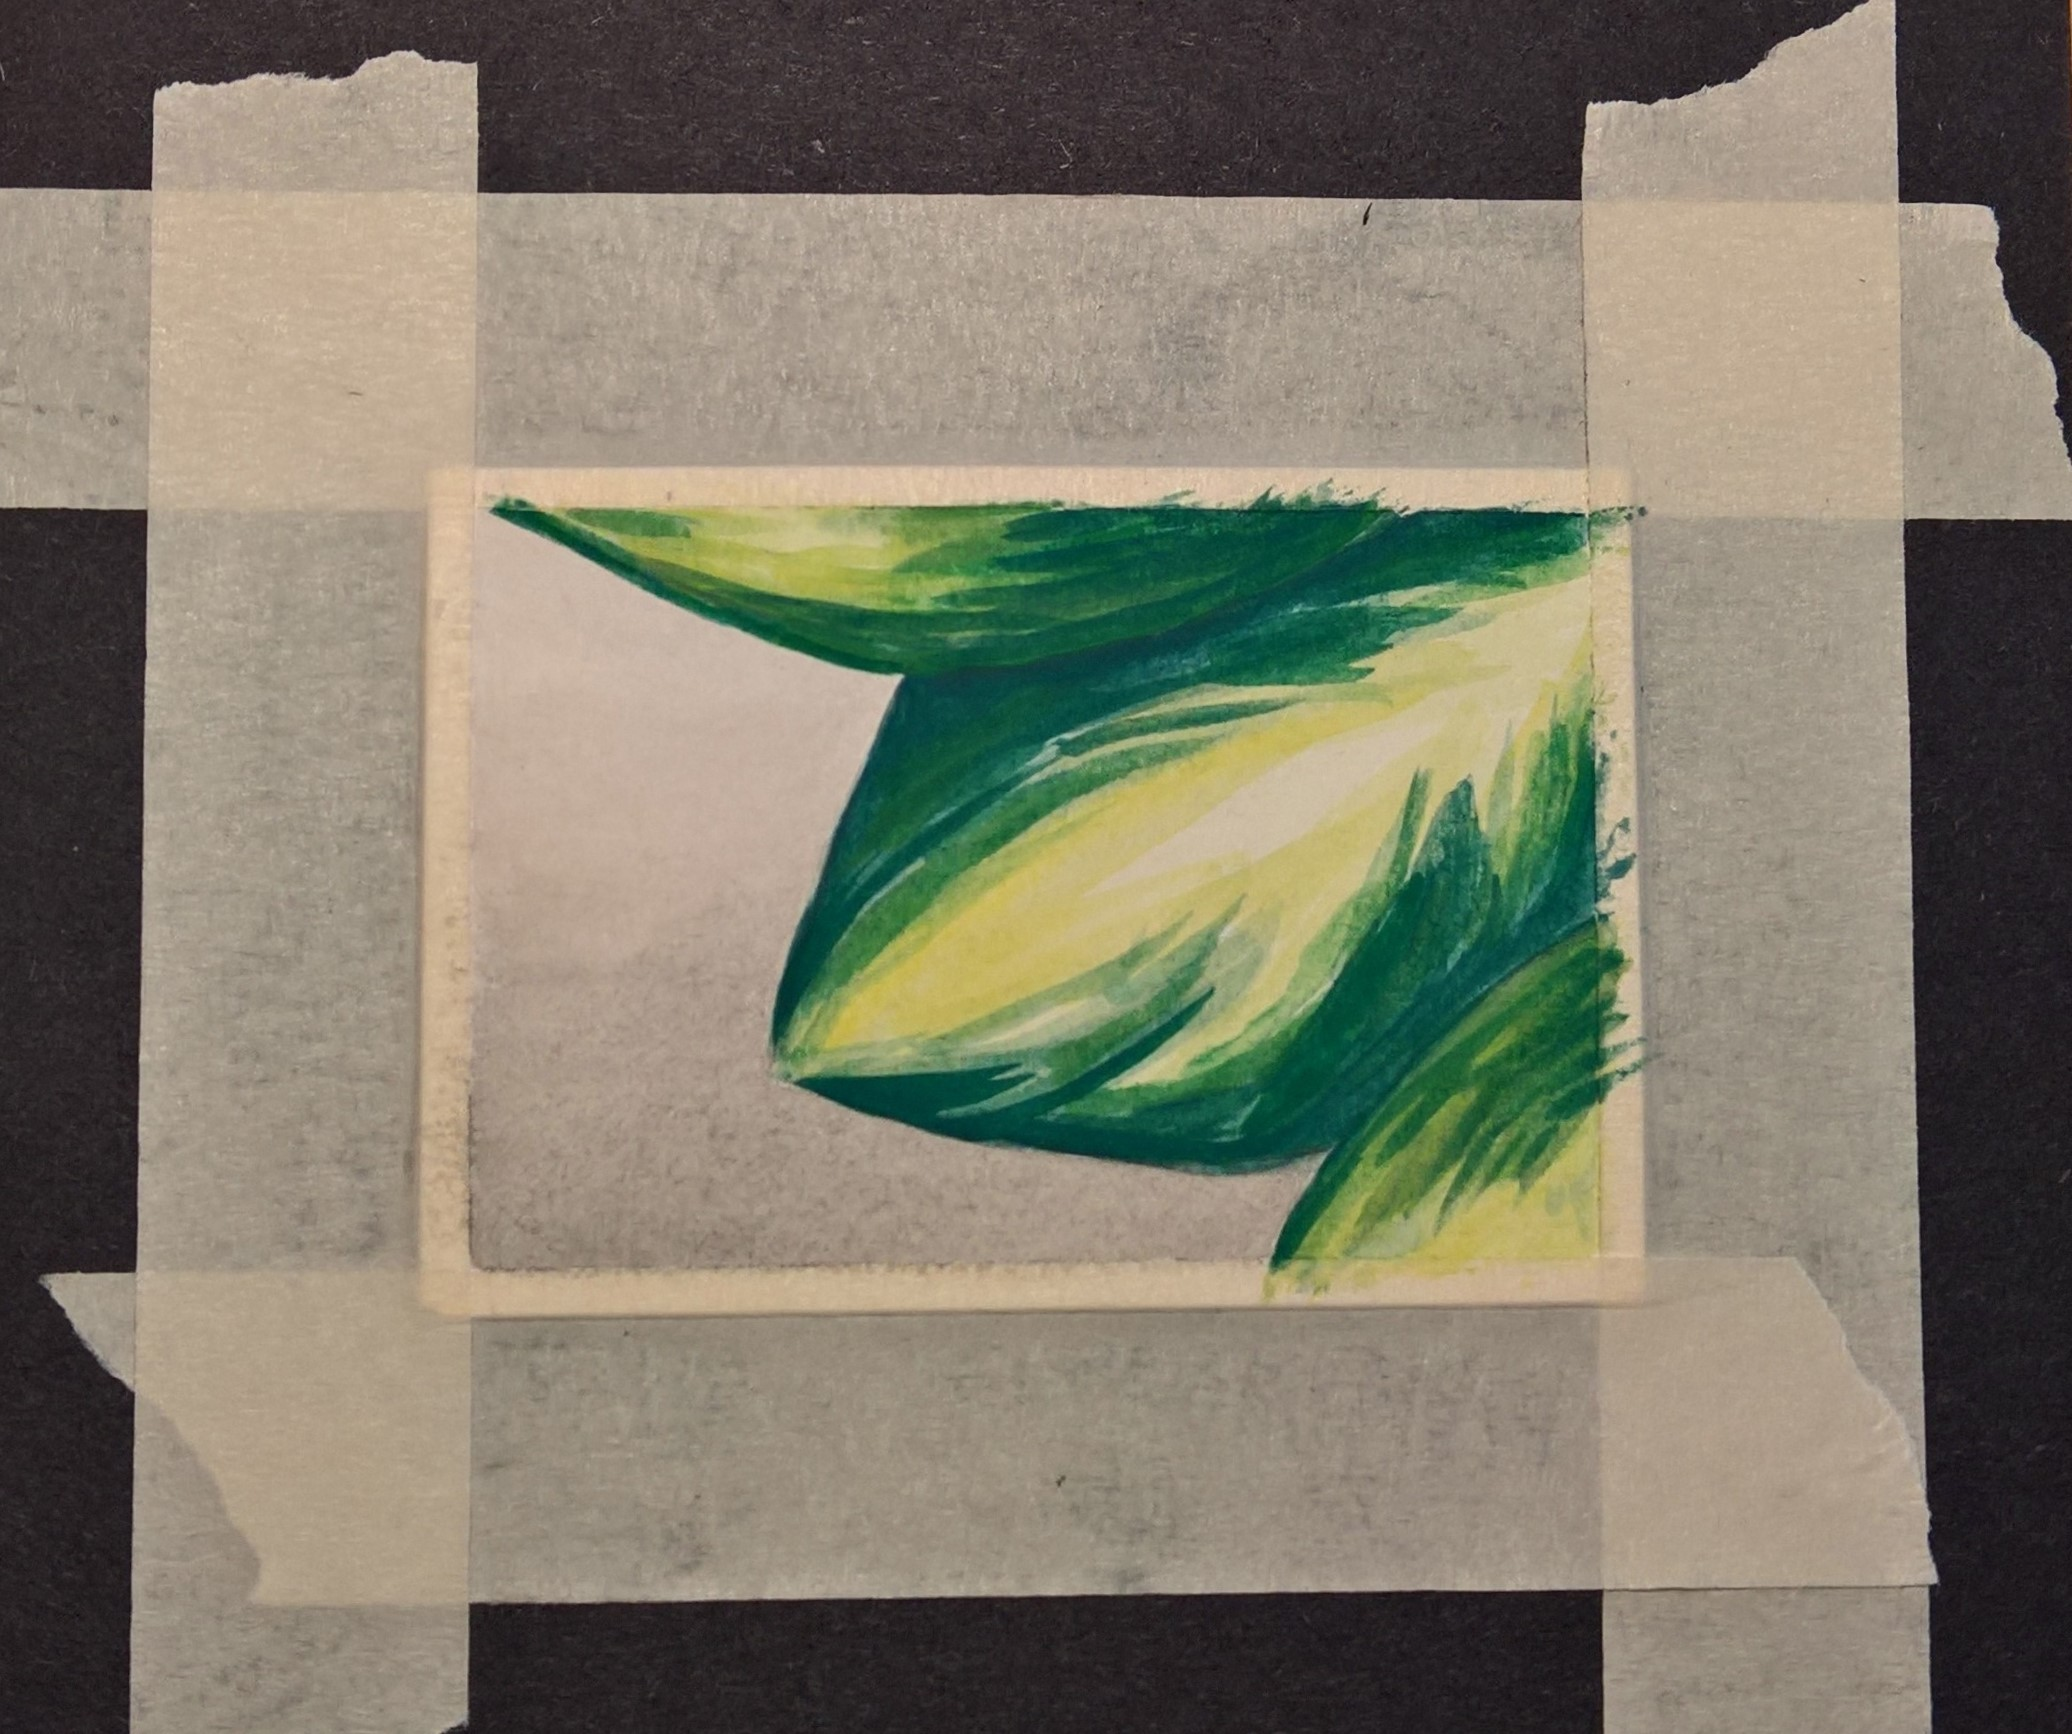 Figure 1 : Watercolor in progress 2 inches by 2.5 inches.